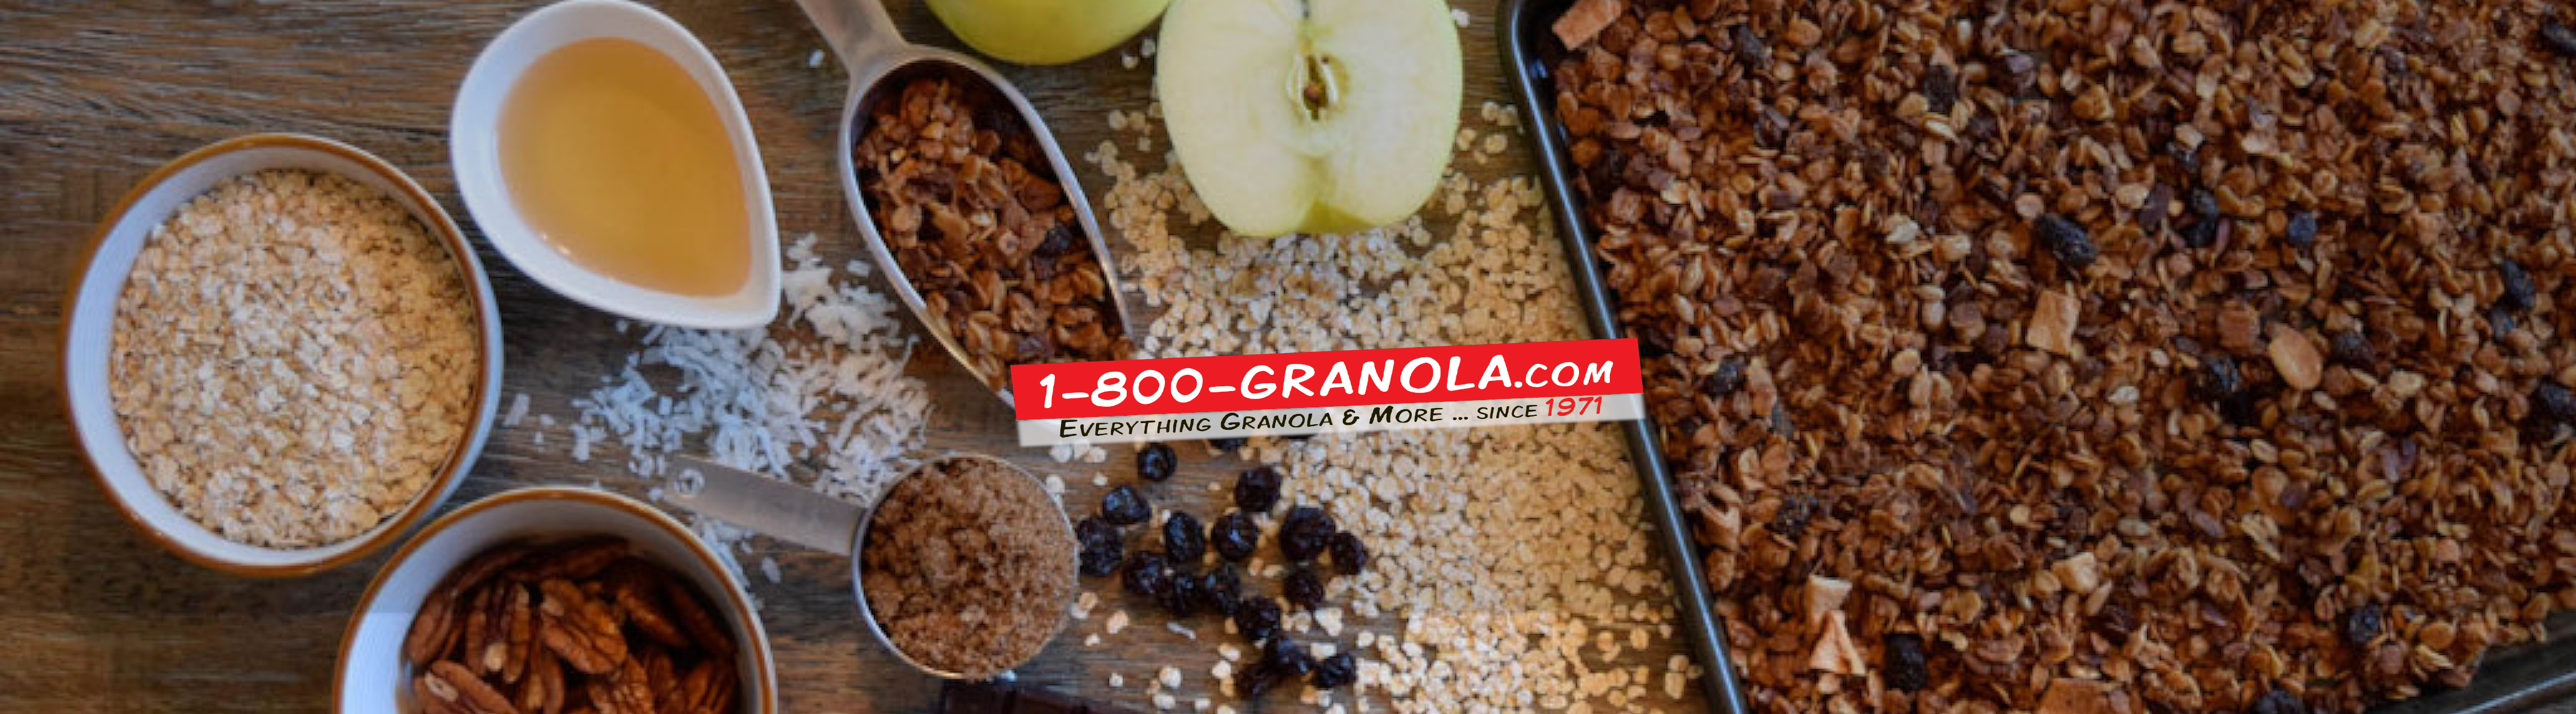 BAKE YOUR OWN GRANOLA